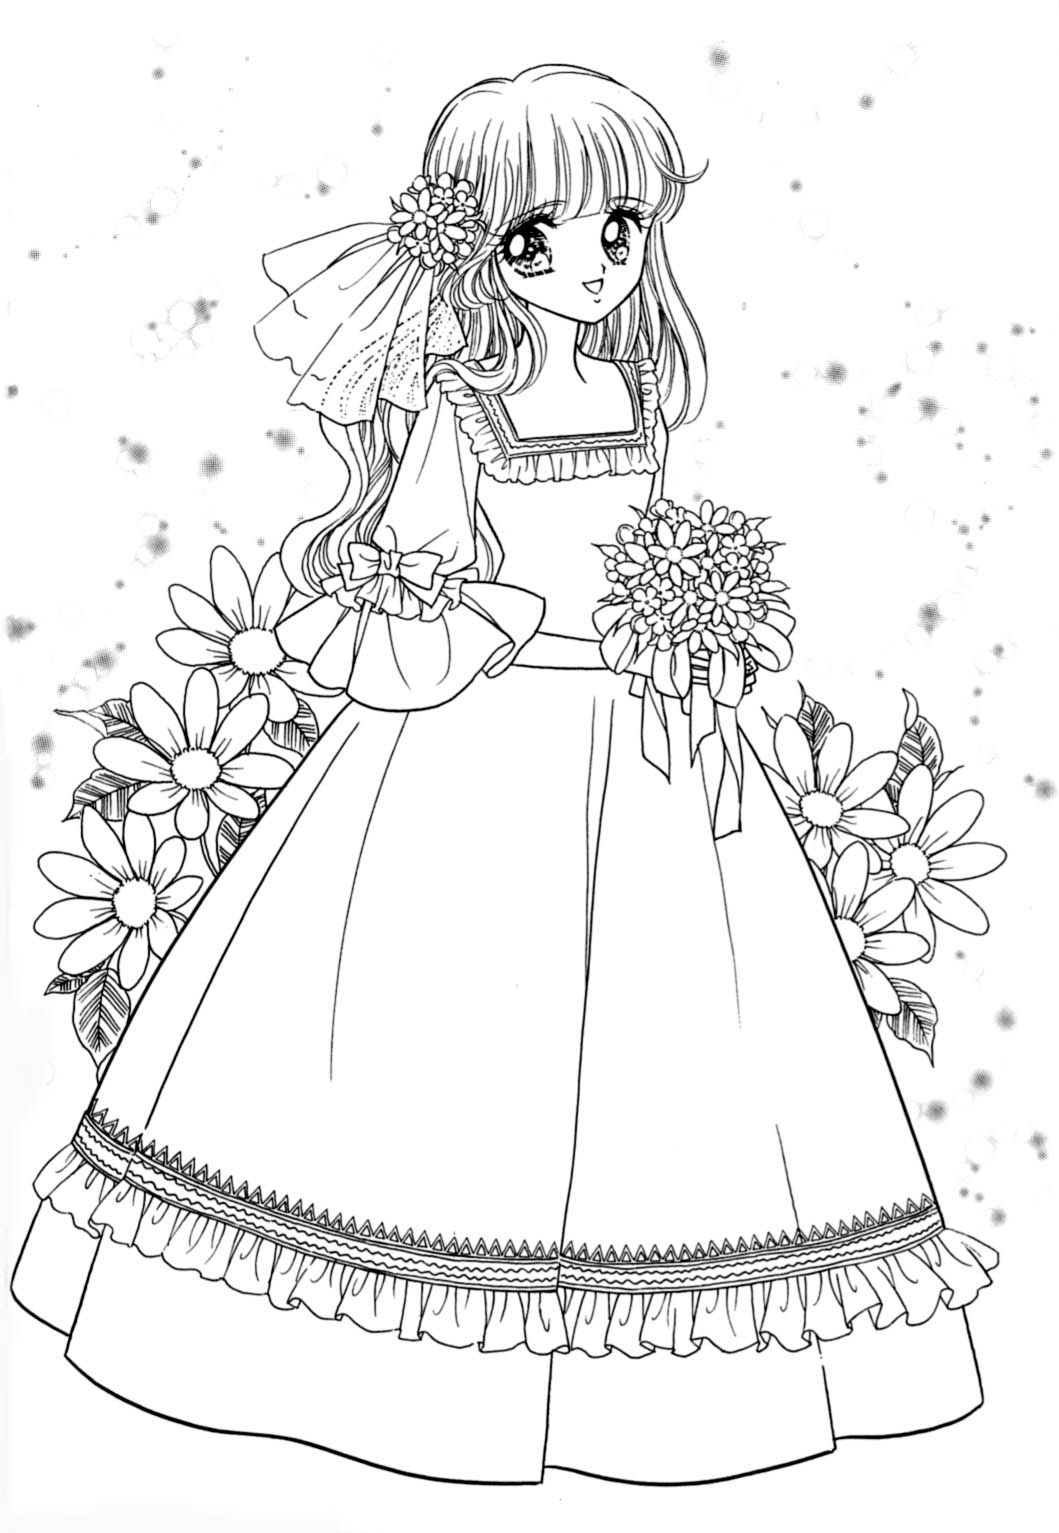 Img Sailor Moon Coloring Pages Cute Coloring Pages Coloring Books